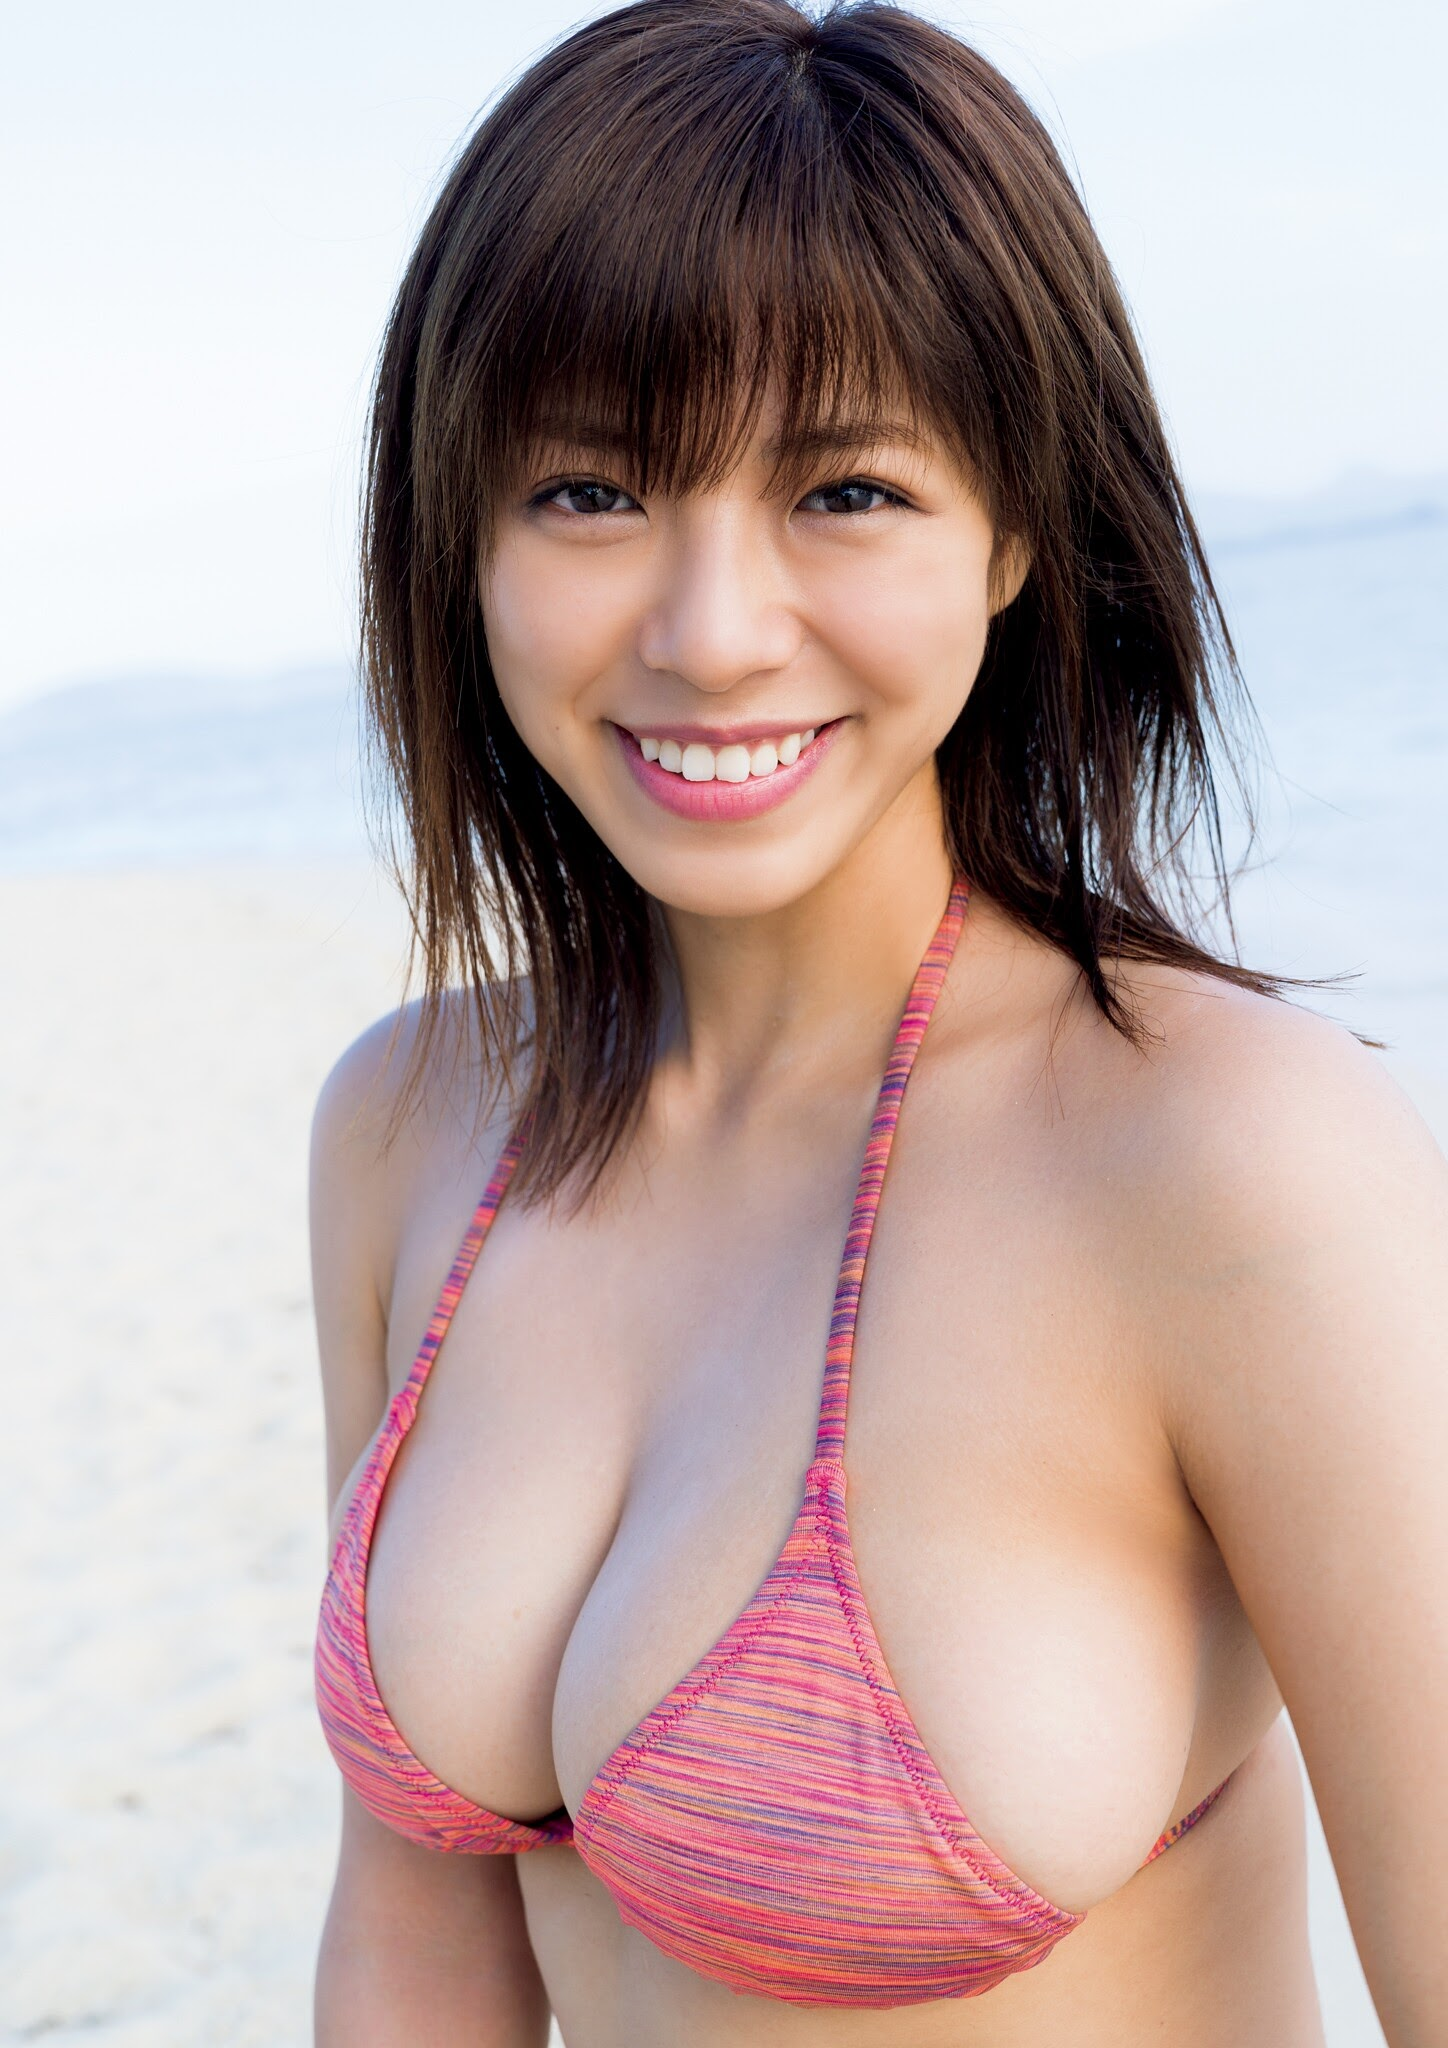 Super body of H cup Minami Wachi 2020 that exposes body and mind in tropical Thailand005